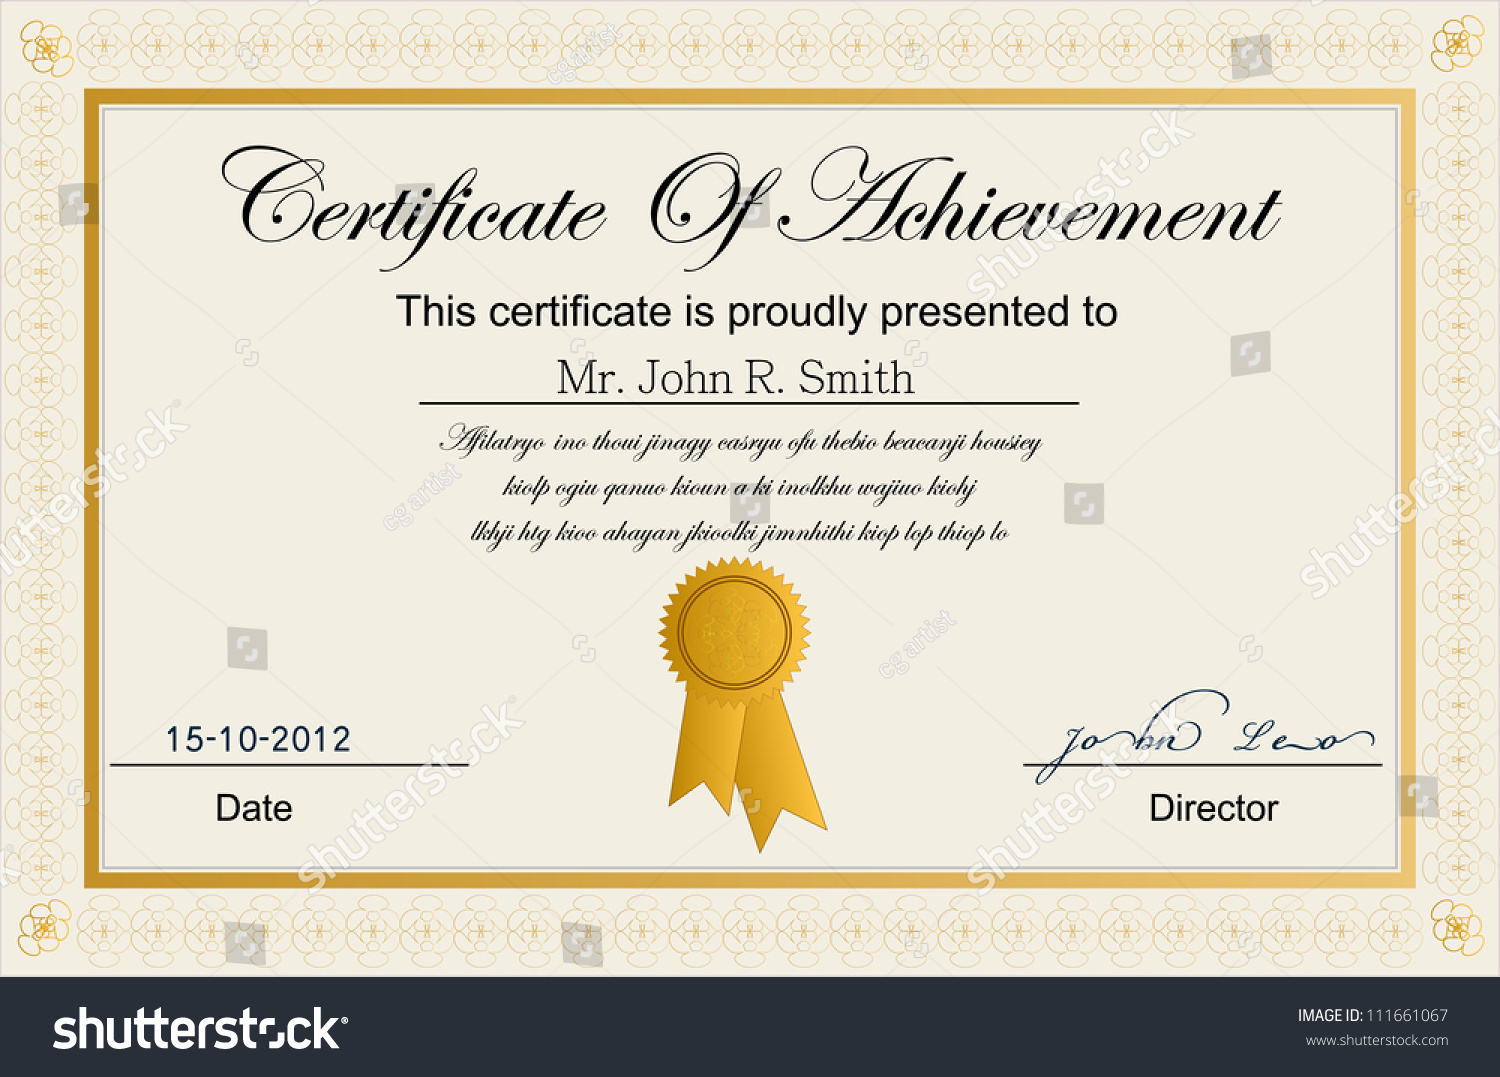 Certificate Of Achievement. Stock Vector 111661067 ...